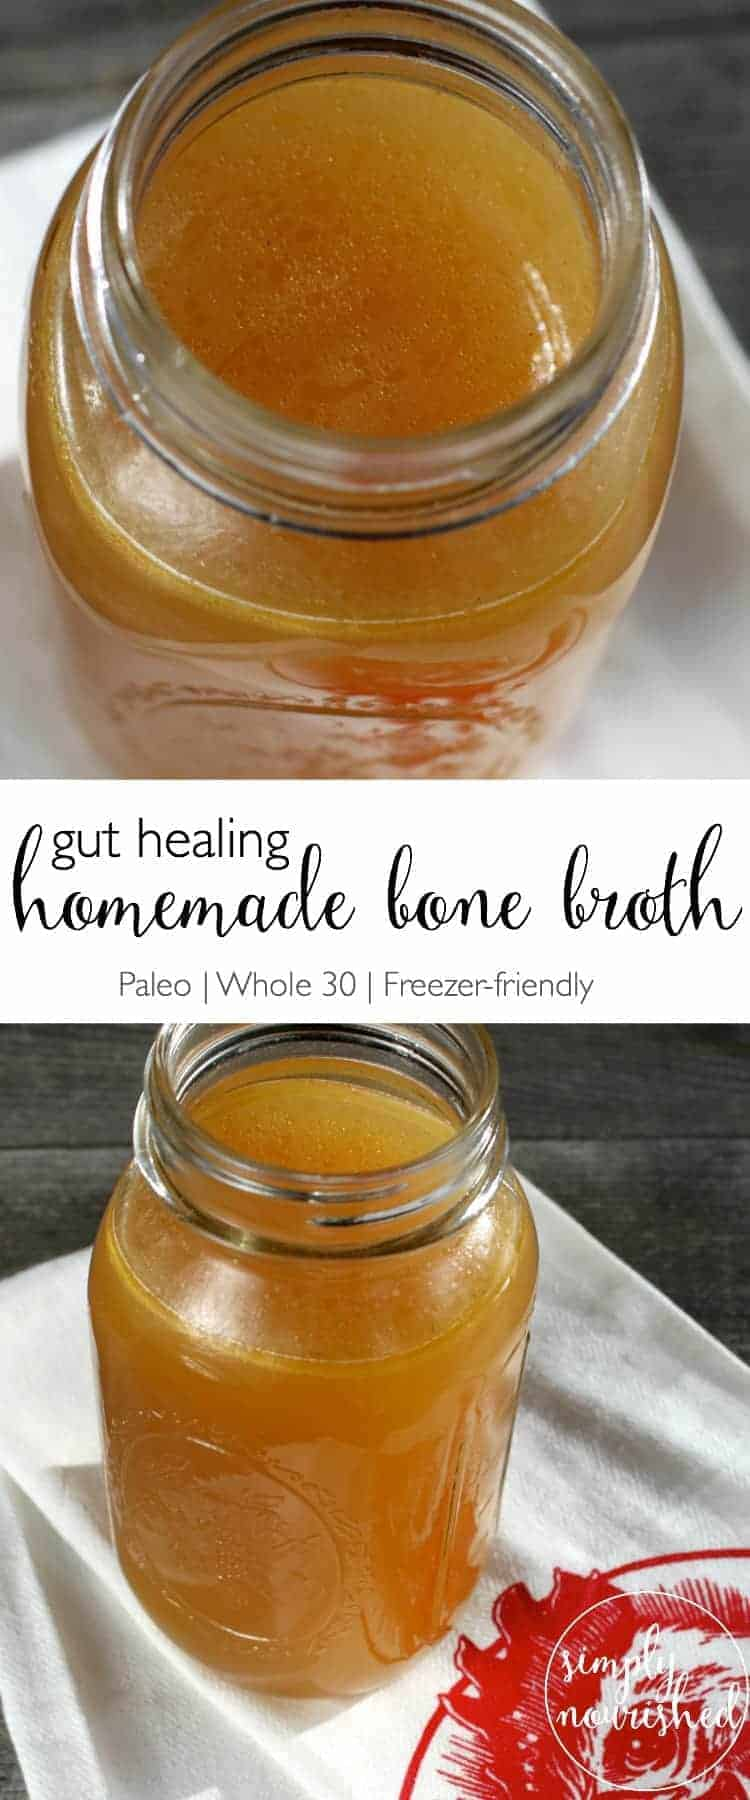 Pour yourself a cup of Nourishing and Gut Healing Homemade Bone Broth | Slow Cooker Recipe | Paleo recipes | Whole30 recipes | freezer-friendly recipes | how to make bone brother | gut-healing recipes || The Real Food Dietitians #bonebroth #whole30 #paleo #freezerfriendly